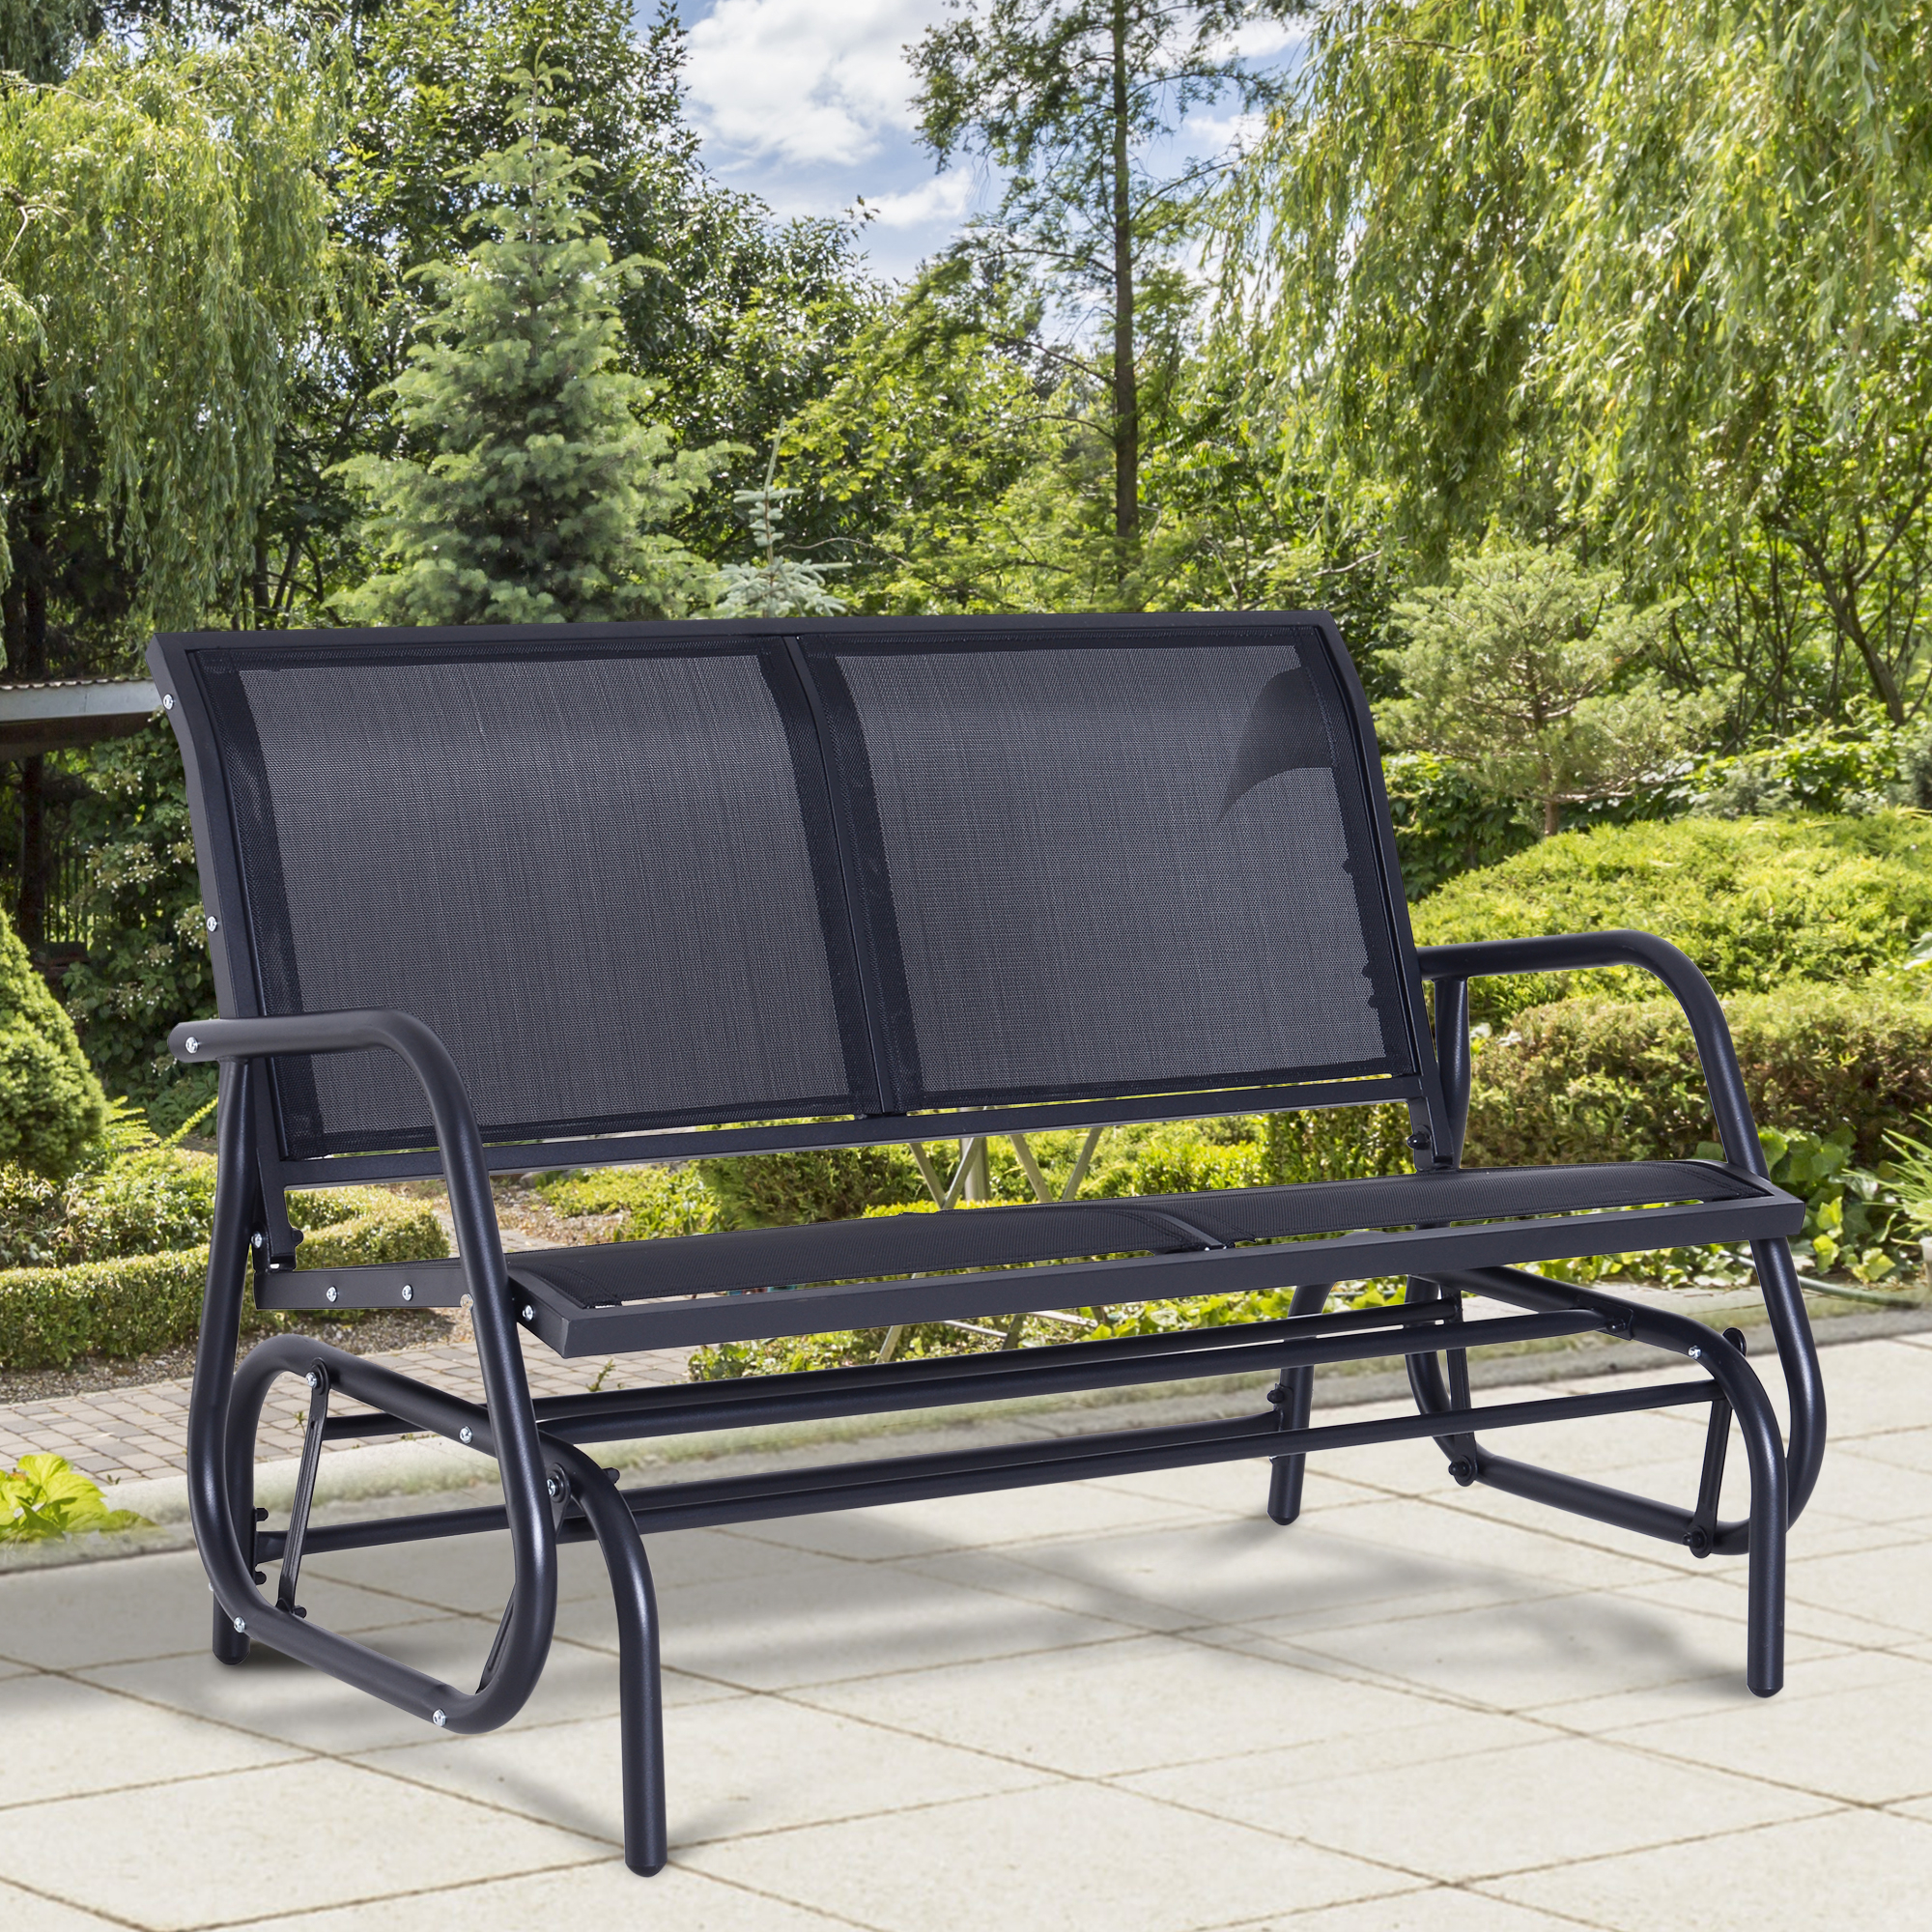 Details About Outsunny 2 Person Patio Glider Bench Swing Chair Garden Mesh  Rocker Steel Black Intended For 2 Person Black Steel Outdoor Swings (View 11 of 25)